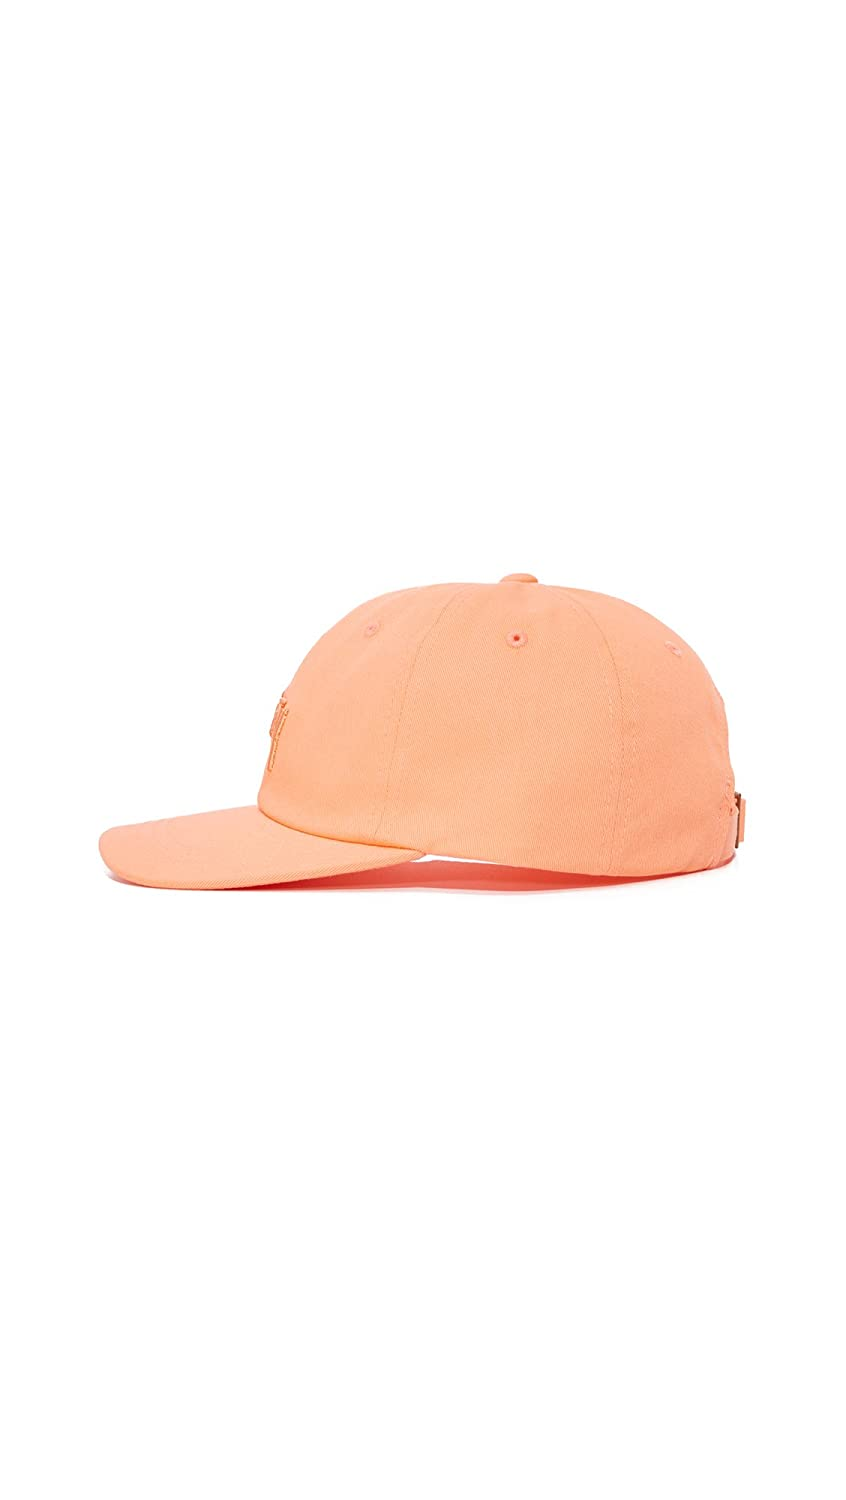 09373c78f45 Stussy Men s Stock Logo Low Cap